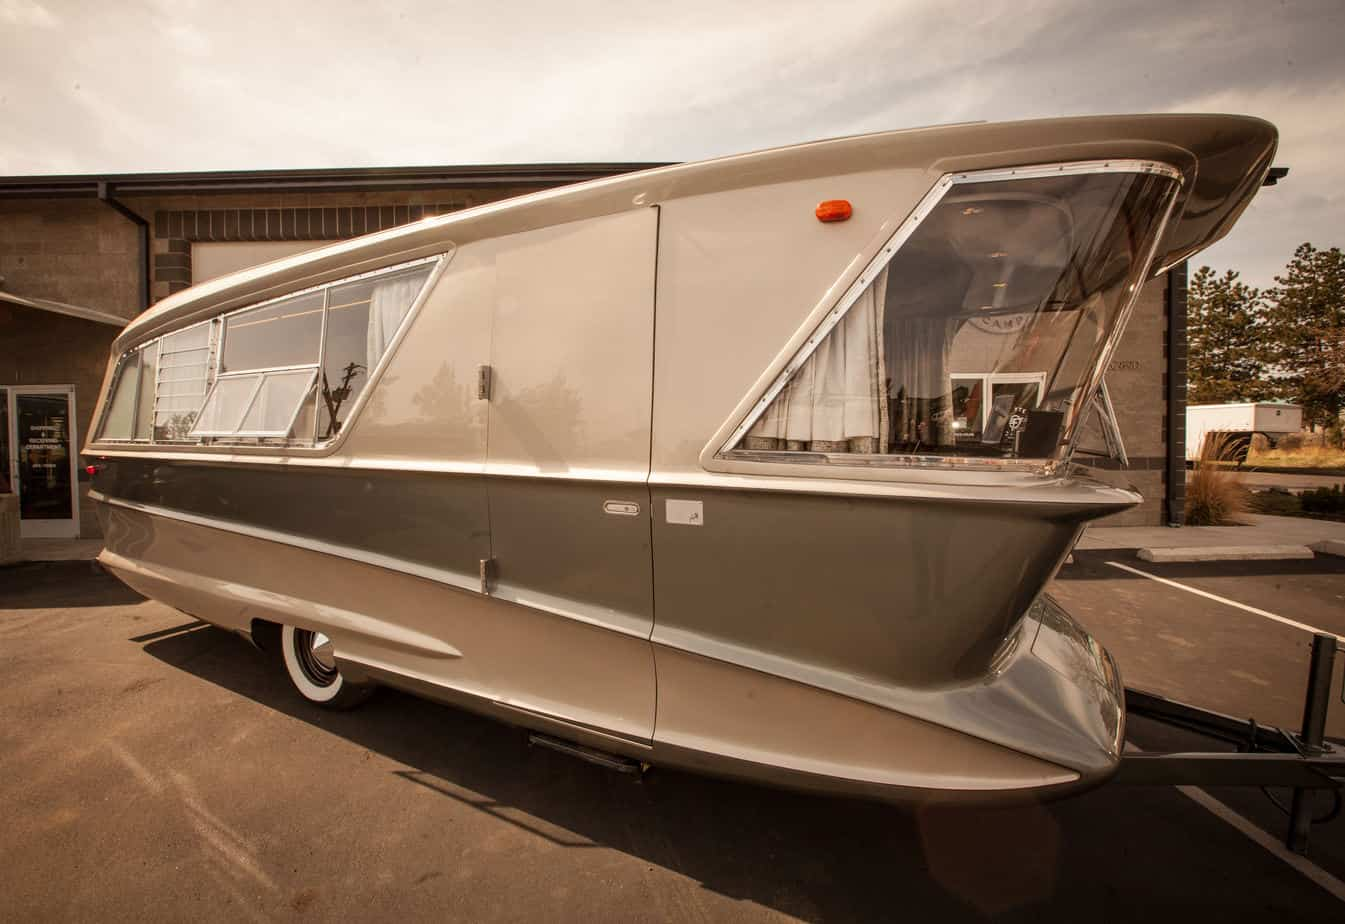 1961_Holiday_House_Geographic - flyte camp - find vintage travel trailers for sale online